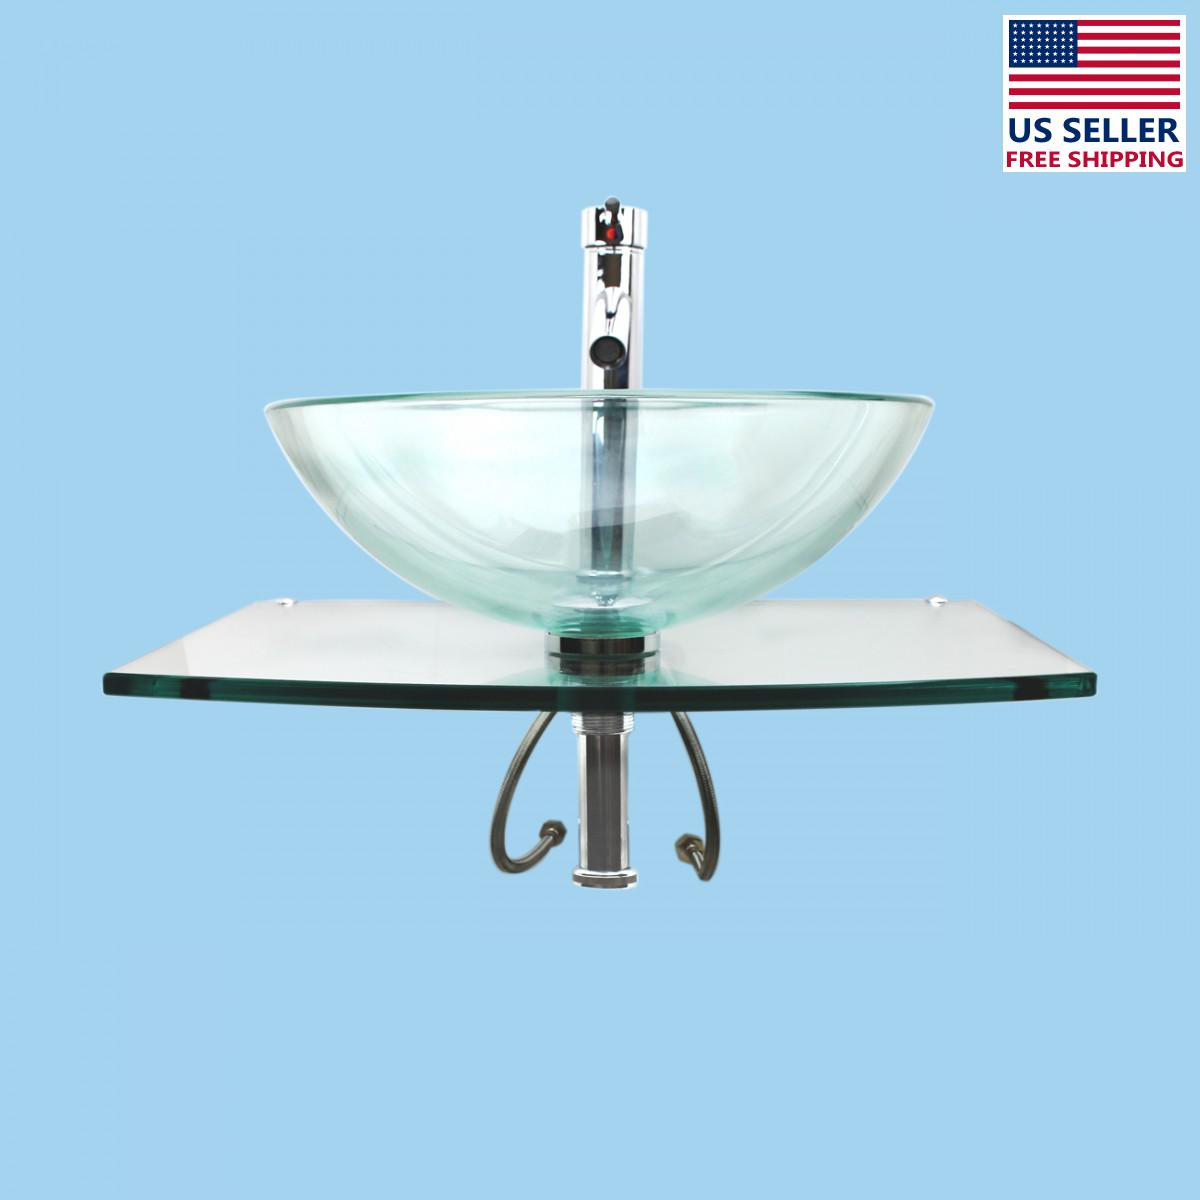 Unique Sinks Unique Tempered Glass Wall Mount Vessel Sink Clear Durable